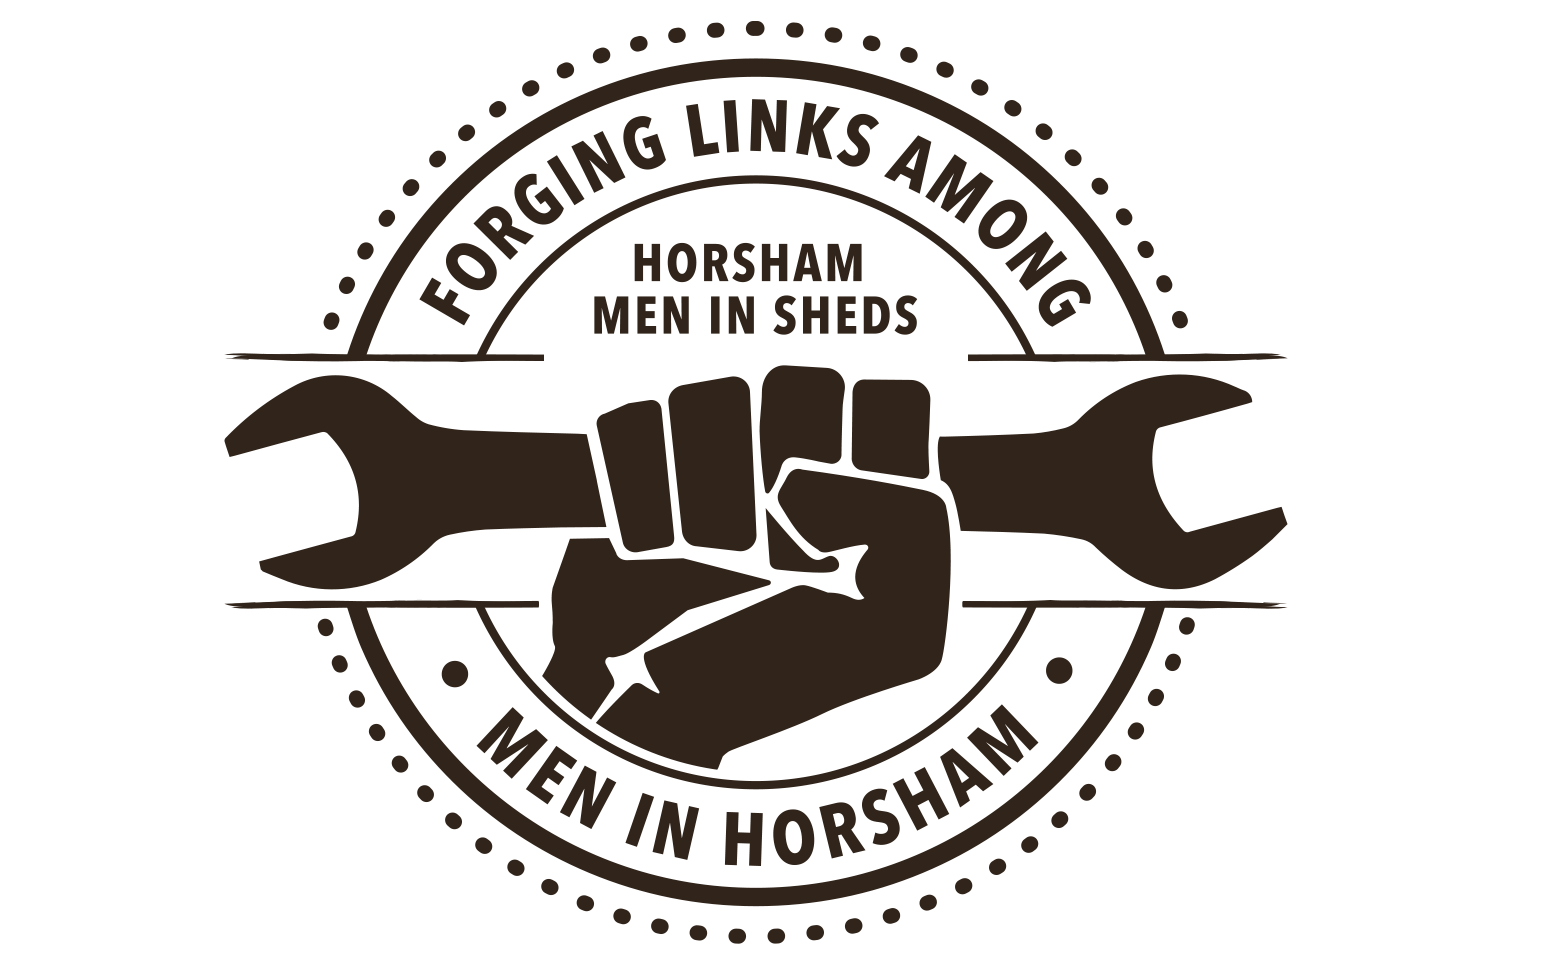 Horsham Men in Sheds